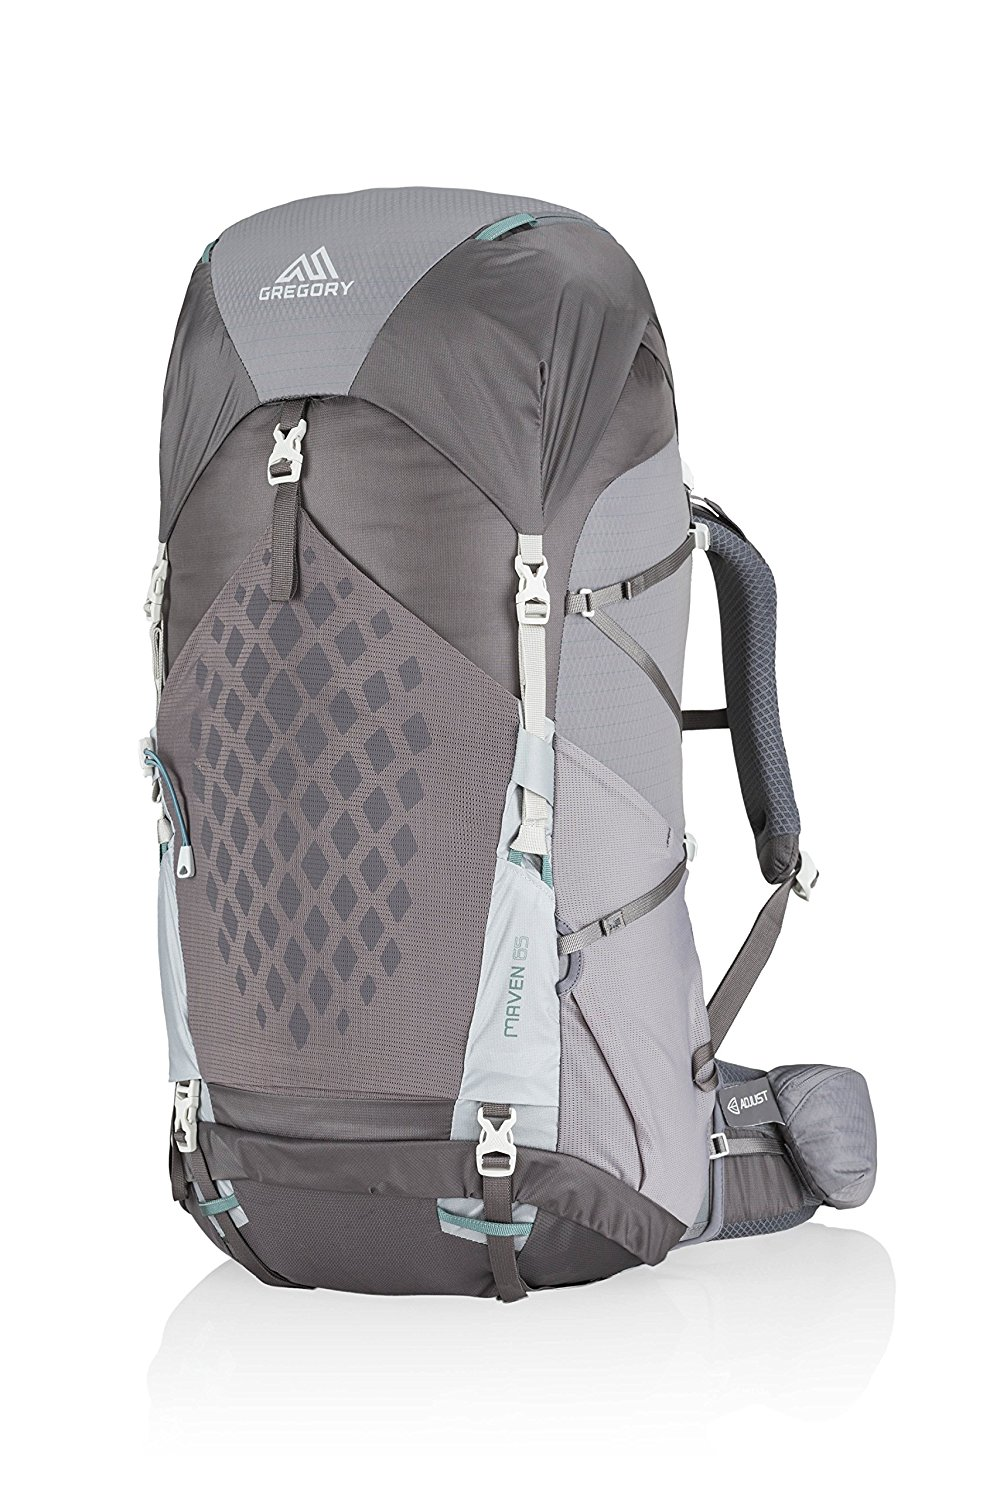 Gregory Mountain Products Maven 65 Liter Women's Lightweight Multi Day Backpack | Raincover Included, Hydration Sleeve and Day Pack Included, Lightweight Construction | Lightweight Comfort on the Trail